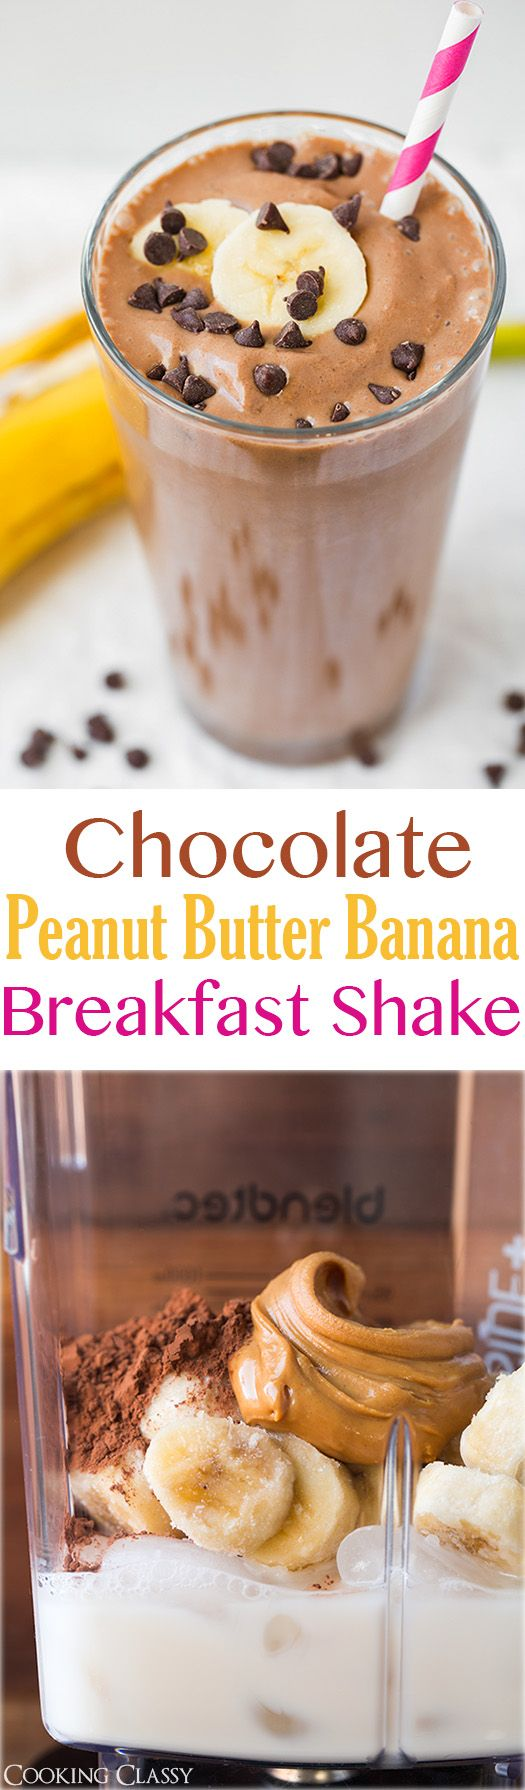 Chocolate Peanut Butter Banana Breakfast Shake #recipe #Rezept #breakfast #Frühstück